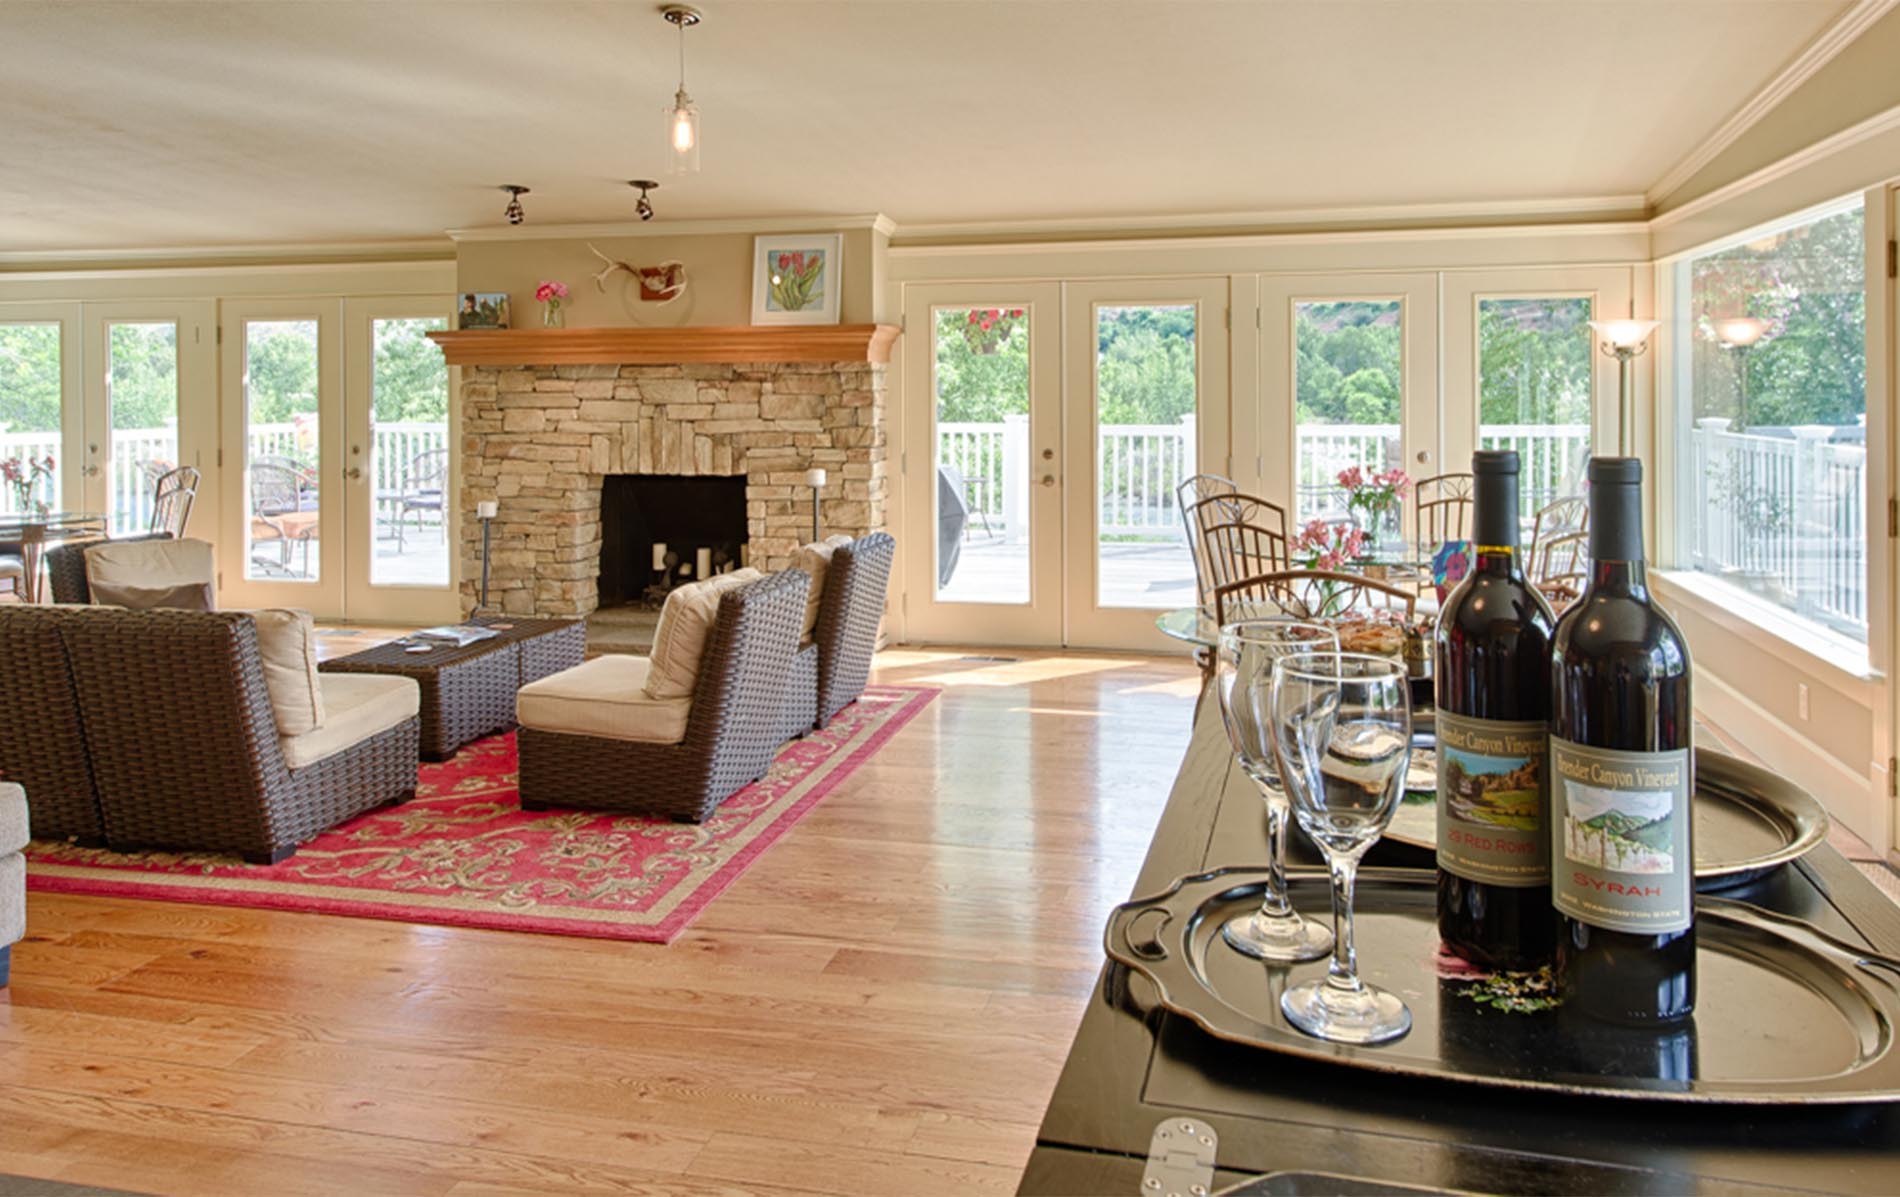 wine room displays our estate wines with the warm lounge and sandstone fireplace behind the wine bar – large French doors